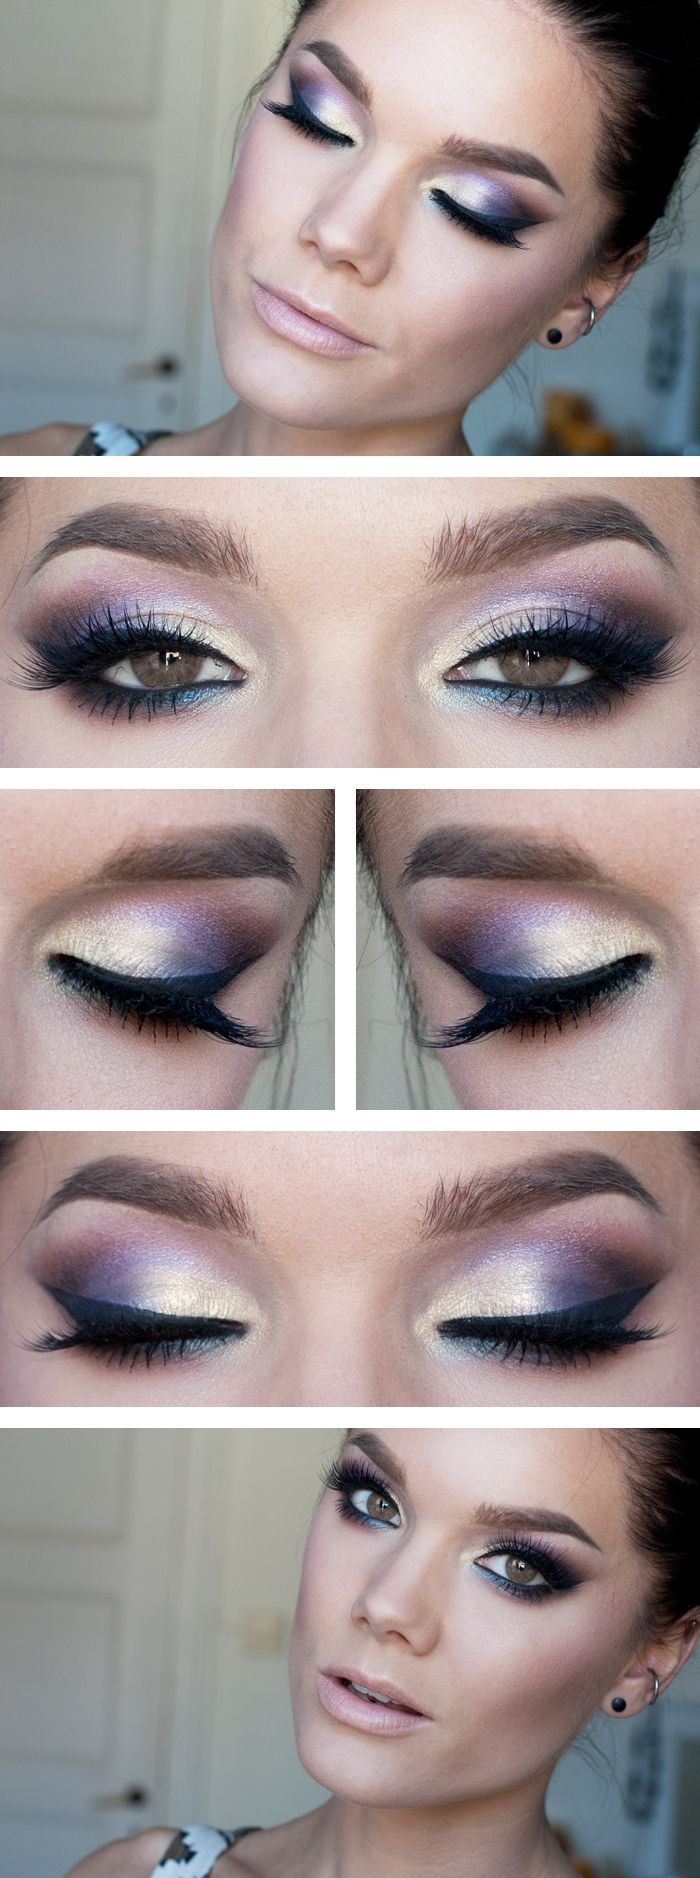 """Today's Look : """"Insomnia"""" -Linda Hallberg (another shimmer and shine look using Too Faced Enchanted Glamourland, this one has a lovely combo of ivory-peach, purples, pinks and blue in lower lash line ... again paired with a nude lip)10/12/13"""